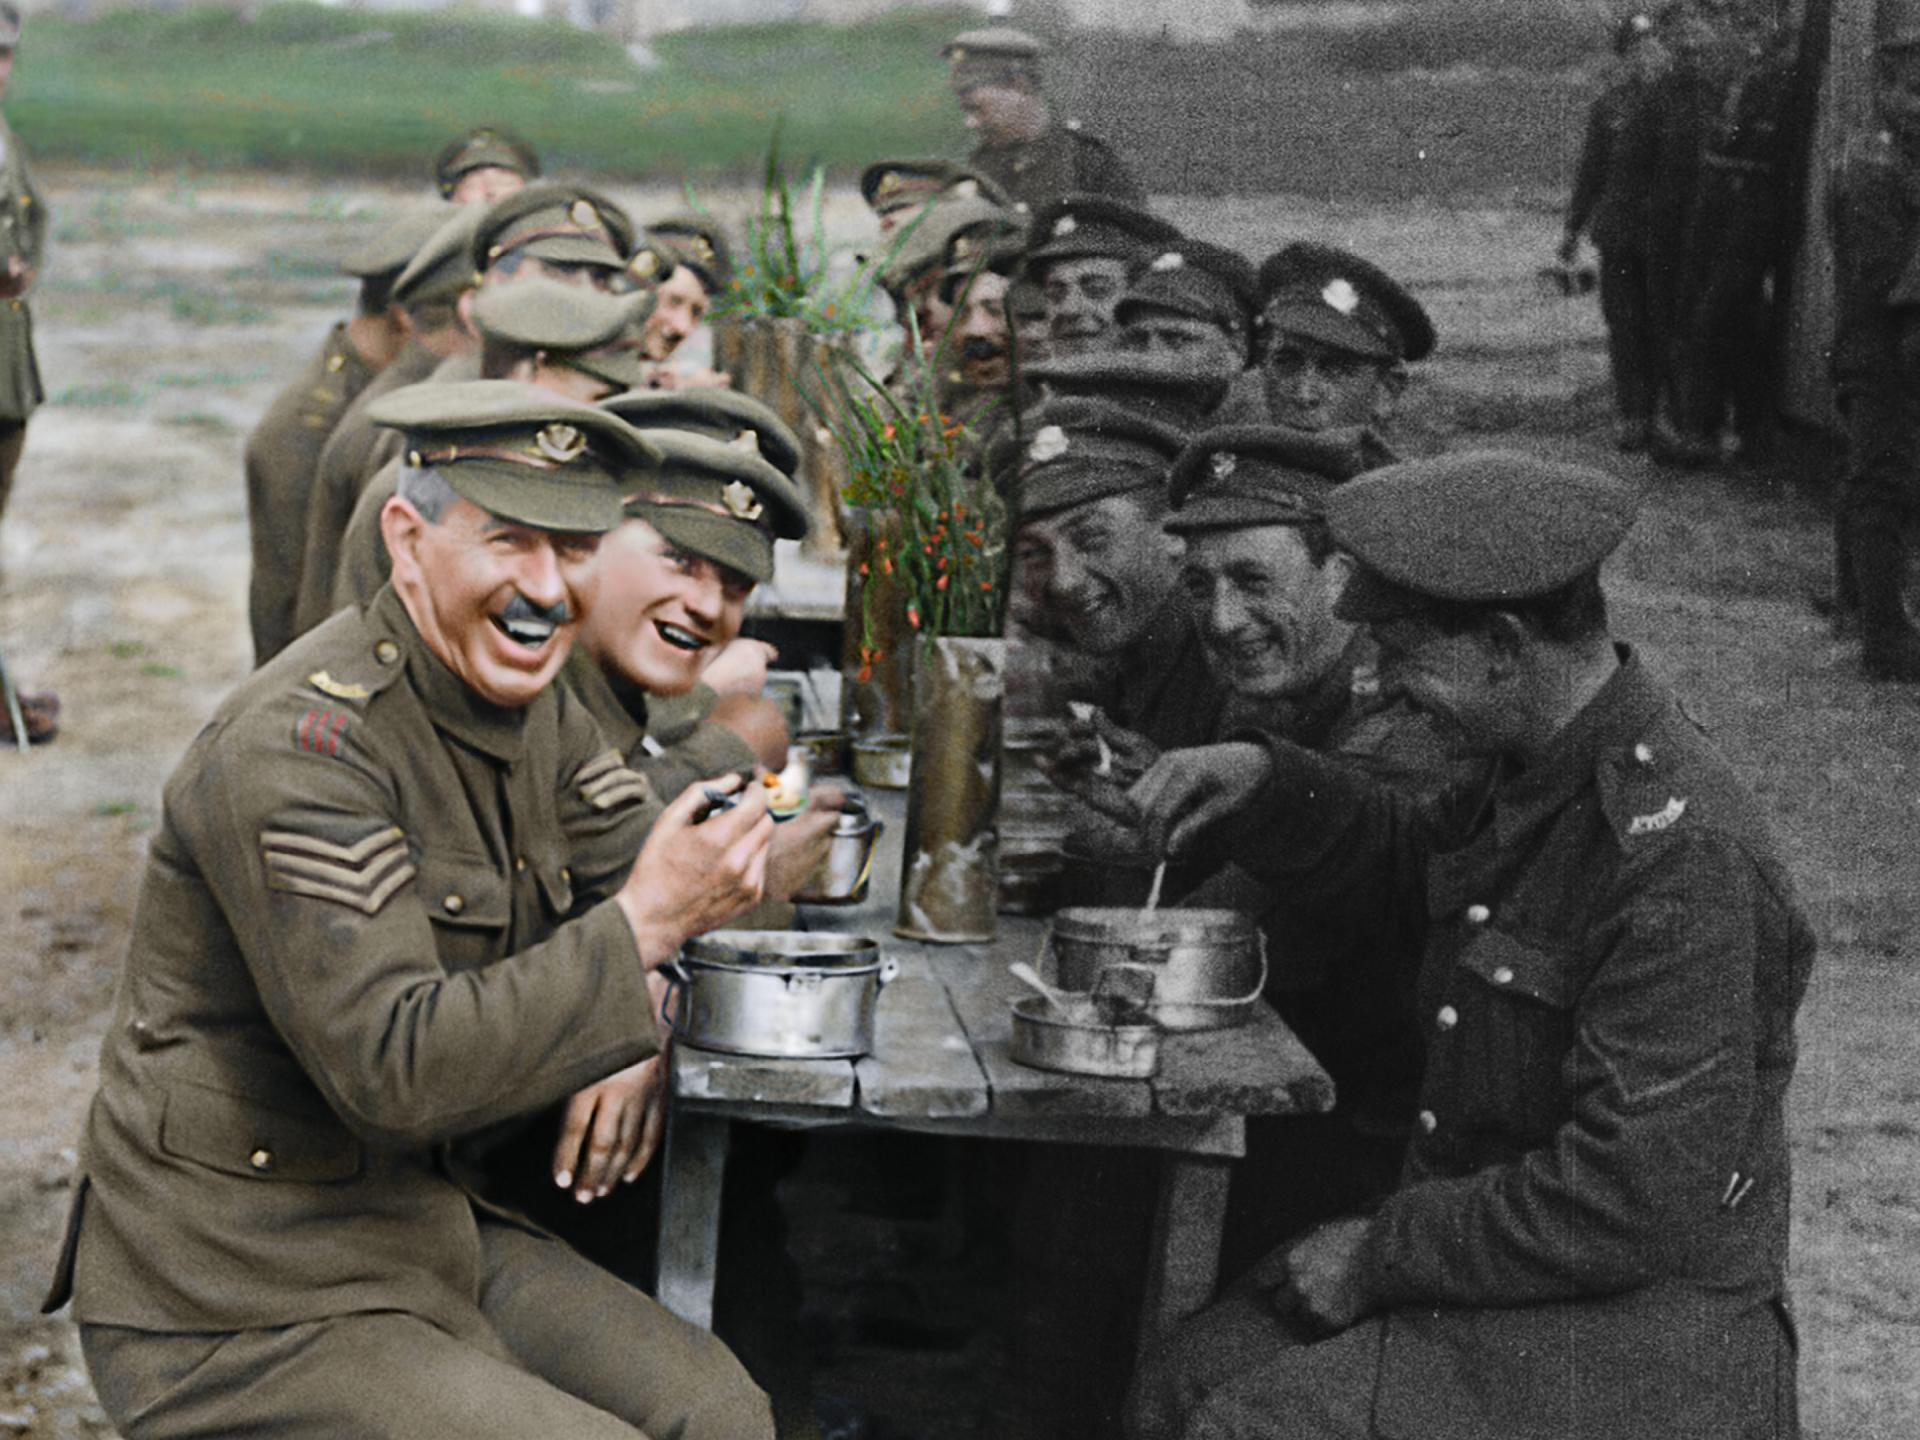 They Shall Not Grow Old Artwork_Colourised footage artistic rendition 2018 - THEY SHALL NOT GROW OLD by WingNut Films with Peter Jackson. Original black and white film © IWM